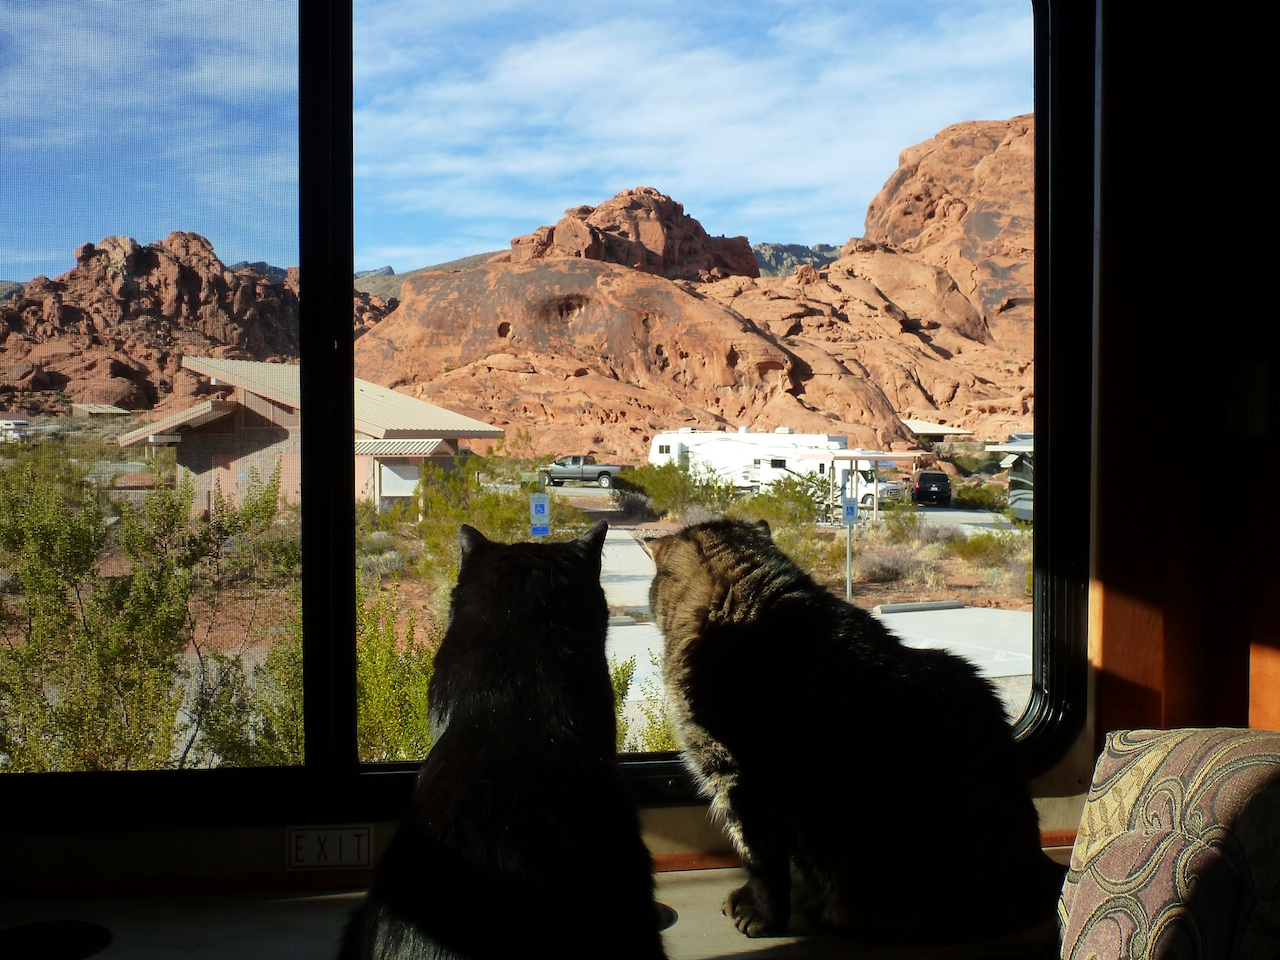 BK And Whisper Taking In The View